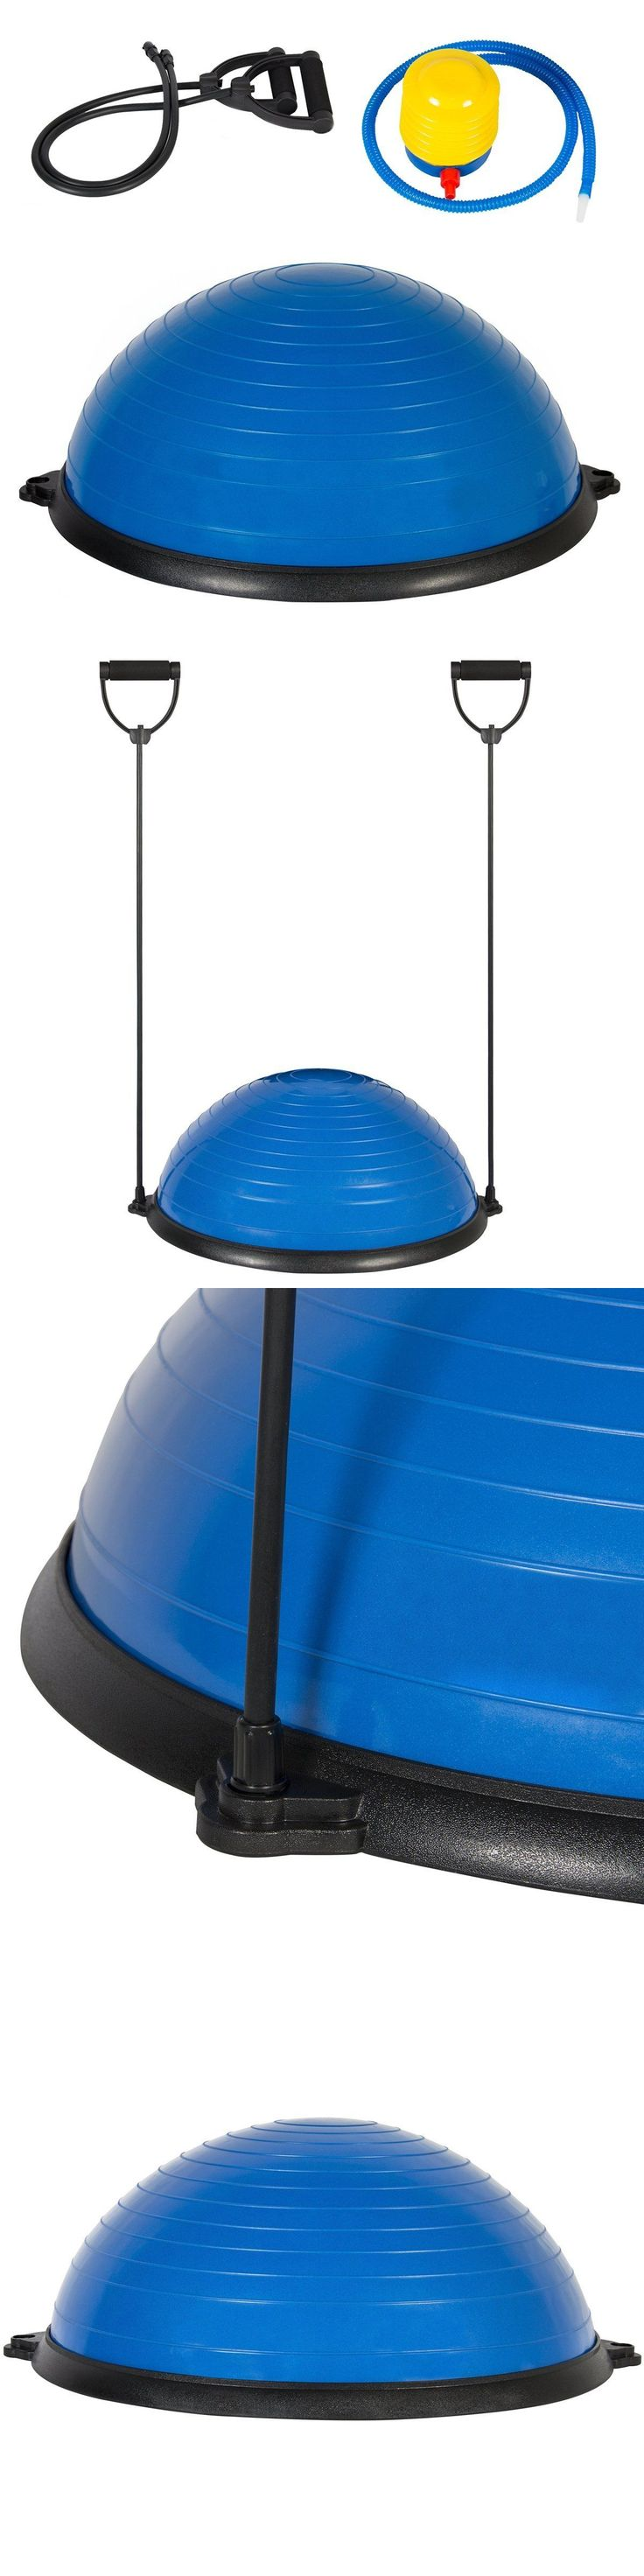 Balance Trainers 179803: Bosu Balance Ball Trainer Strength Training Fitness Yoga Endurance Workout New BUY IT NOW ONLY: $66.49